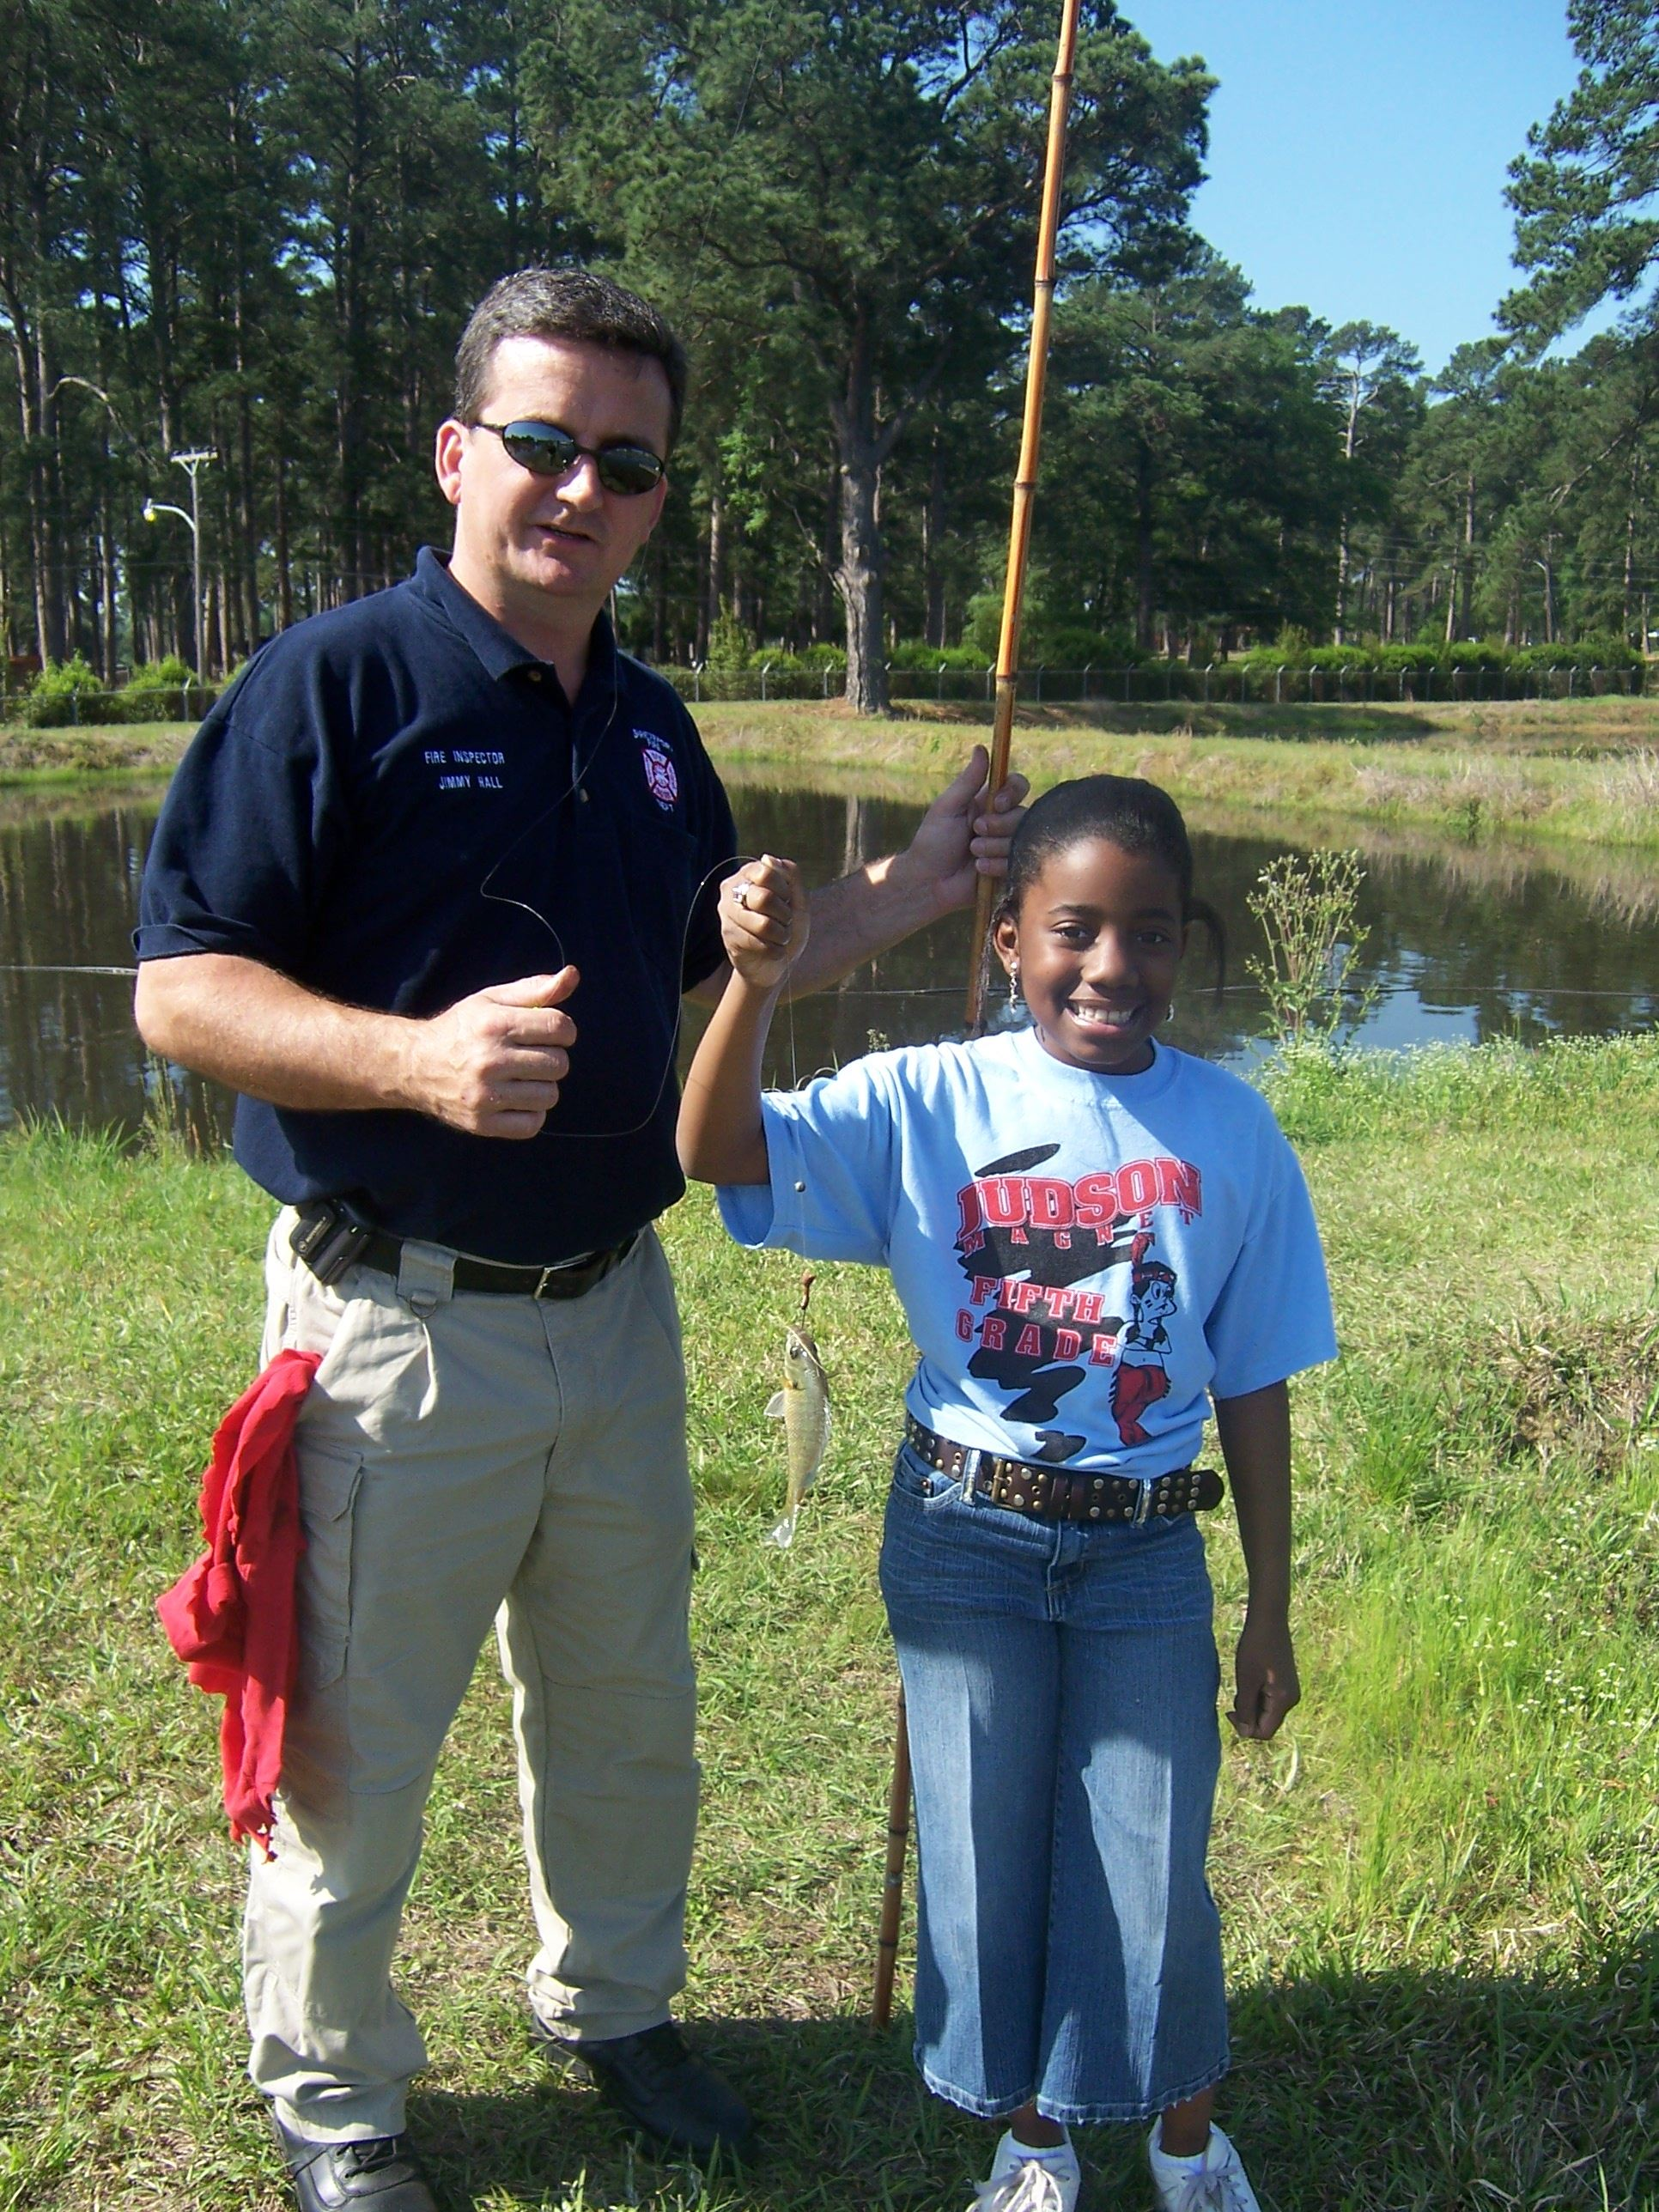 A young girl holding up a fish while standing next to a man